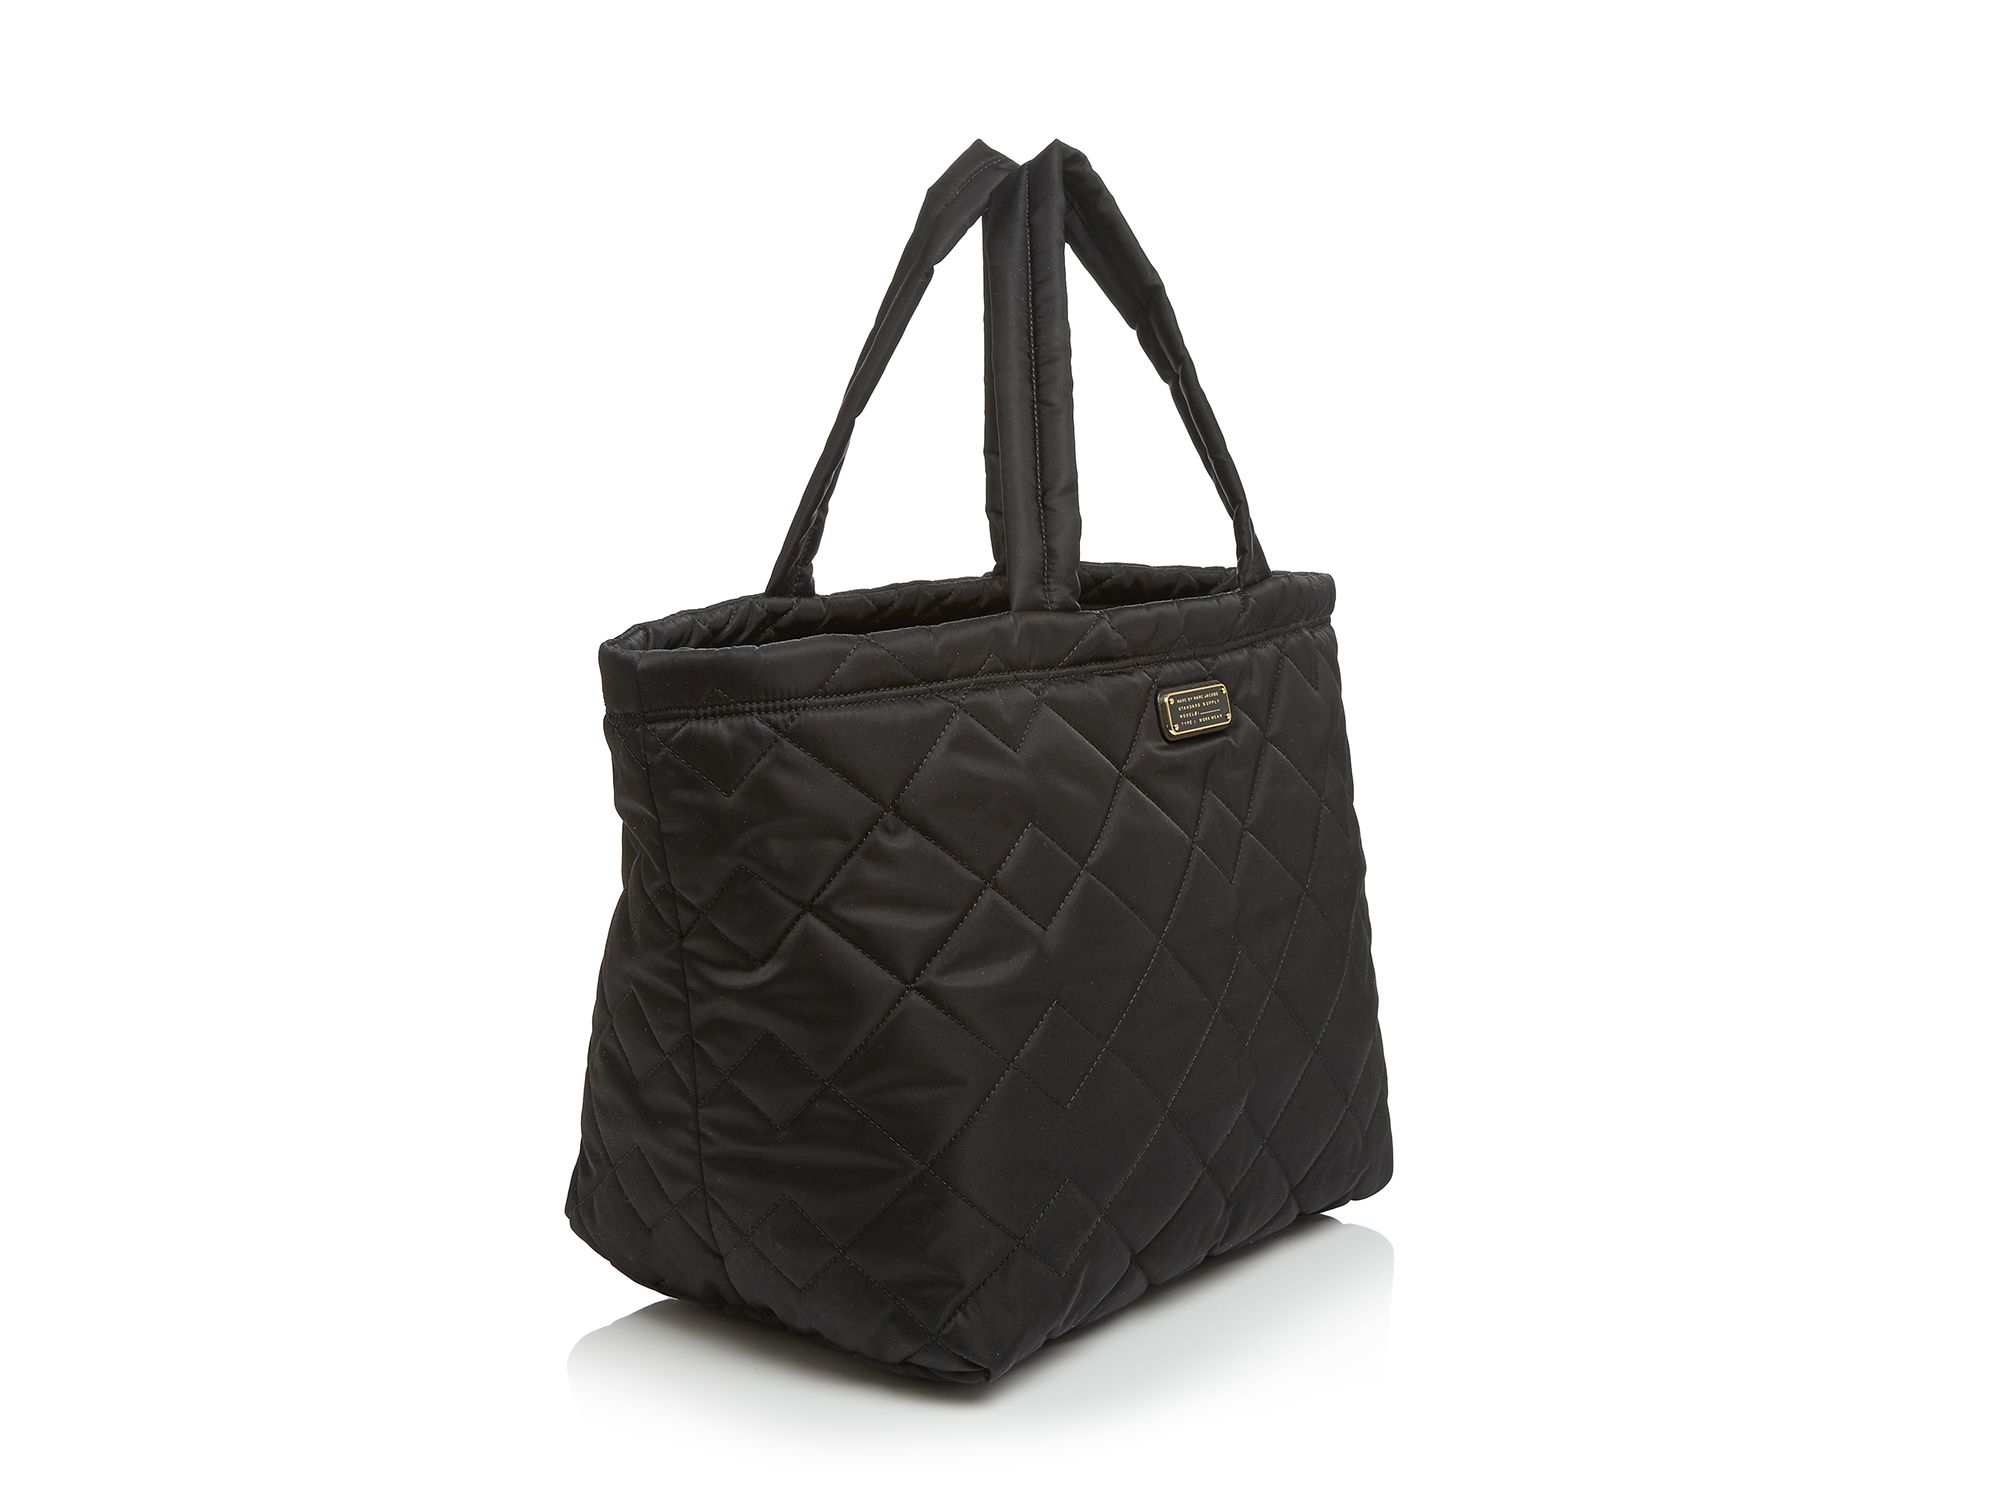 Lyst - Marc by marc jacobs Weekender - Crosby Quilt Nylon in Black : marc jacobs quilted tote bag - Adamdwight.com